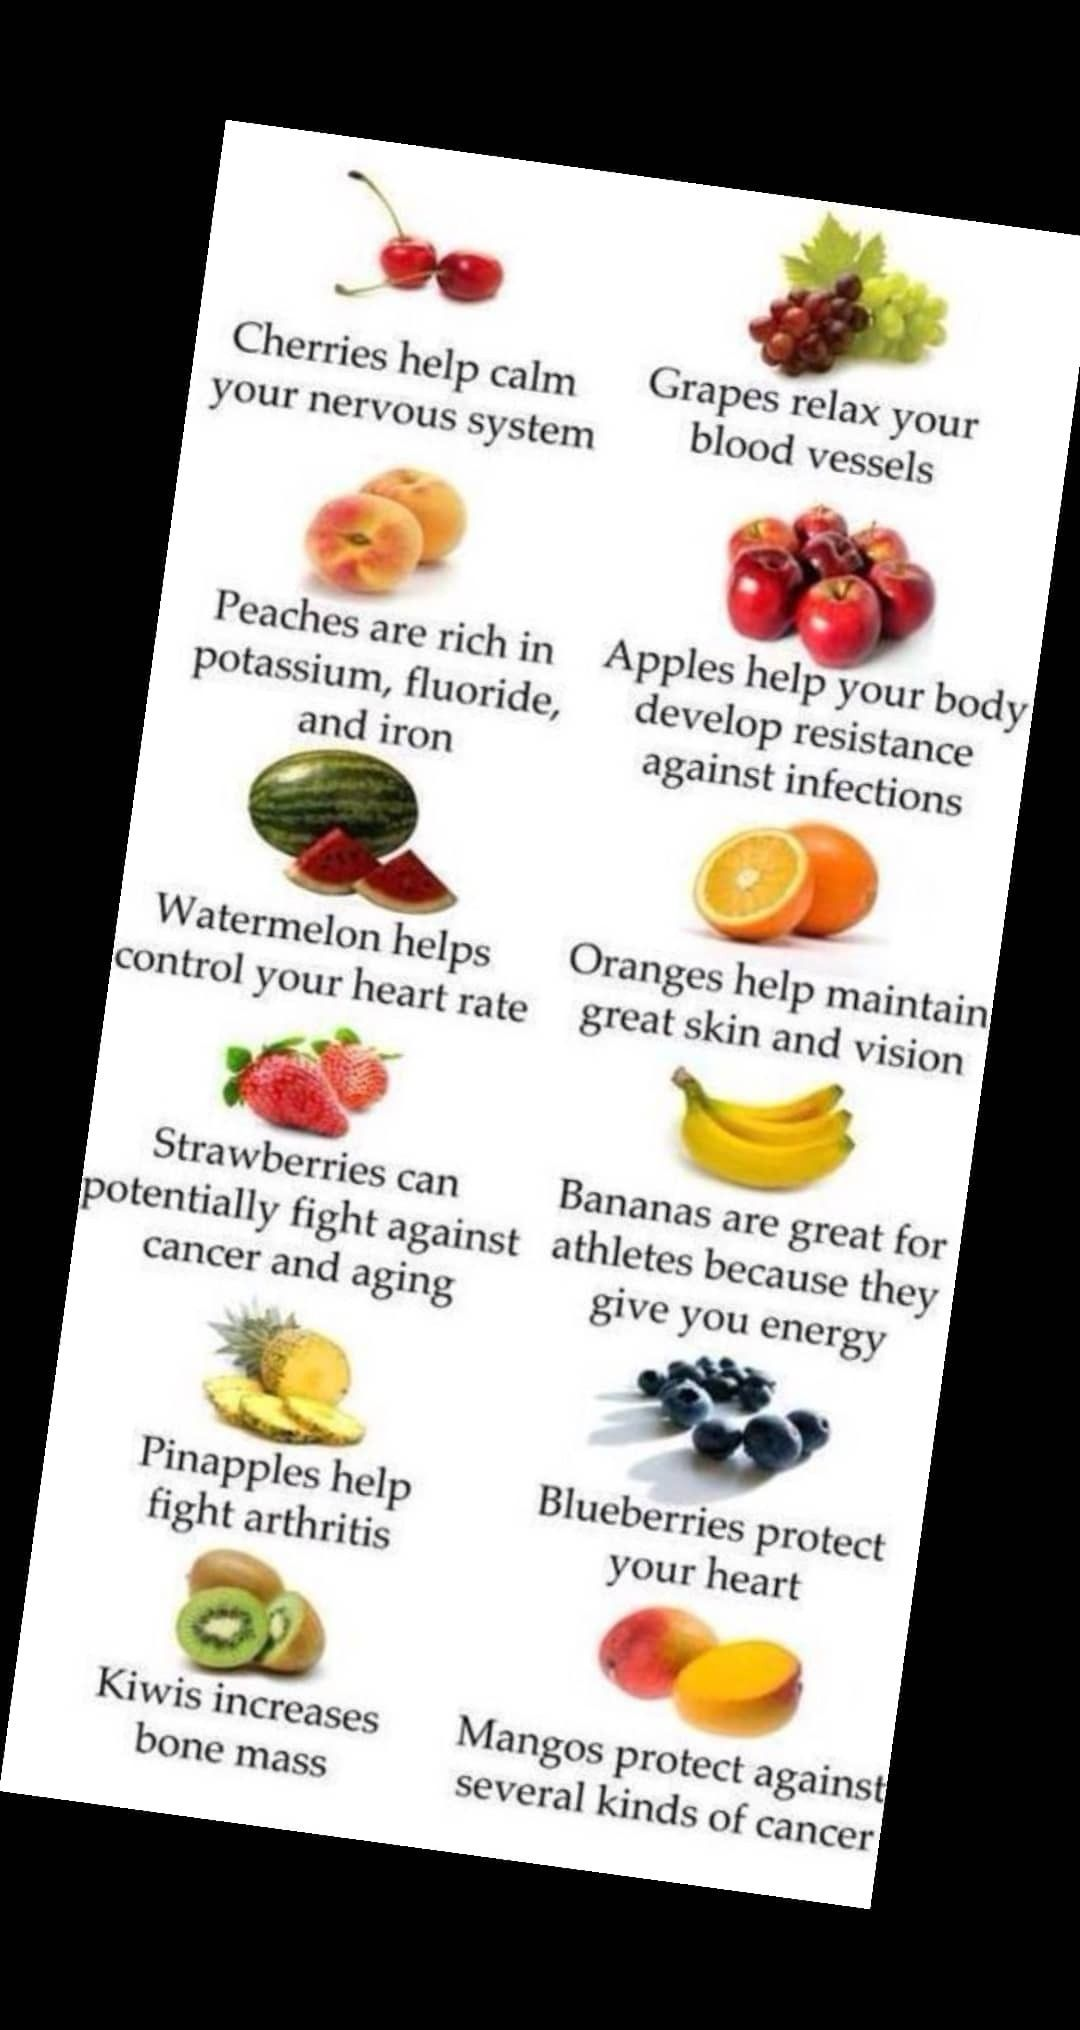 ✅ benefit of 🍍🍎🍓🍇 fruits. ✅ which fruit do you like